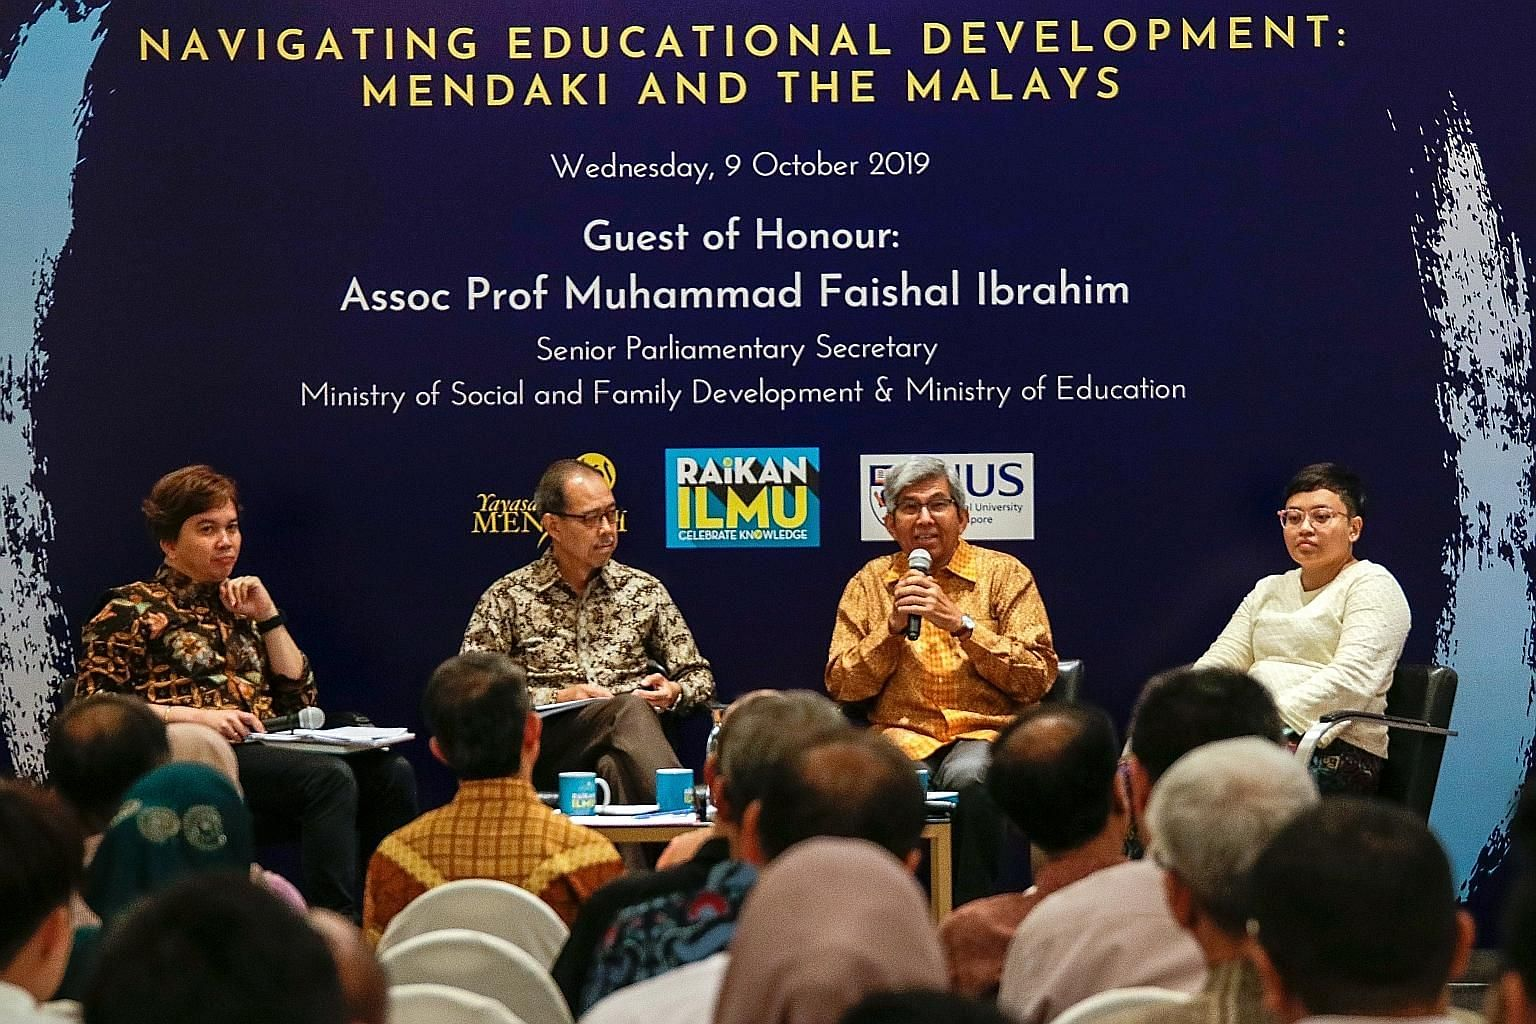 (From left) Dr Azhar Ibrahim, who moderated the dialogue, with Associate Professor Mukhlis Abu Bakar, Professor Yaacob Ibrahim and Ms Siti Hazirah Mohamad. They were speaking at a dialogue on self-help group Yayasan Mendaki's latest book (above). PHO